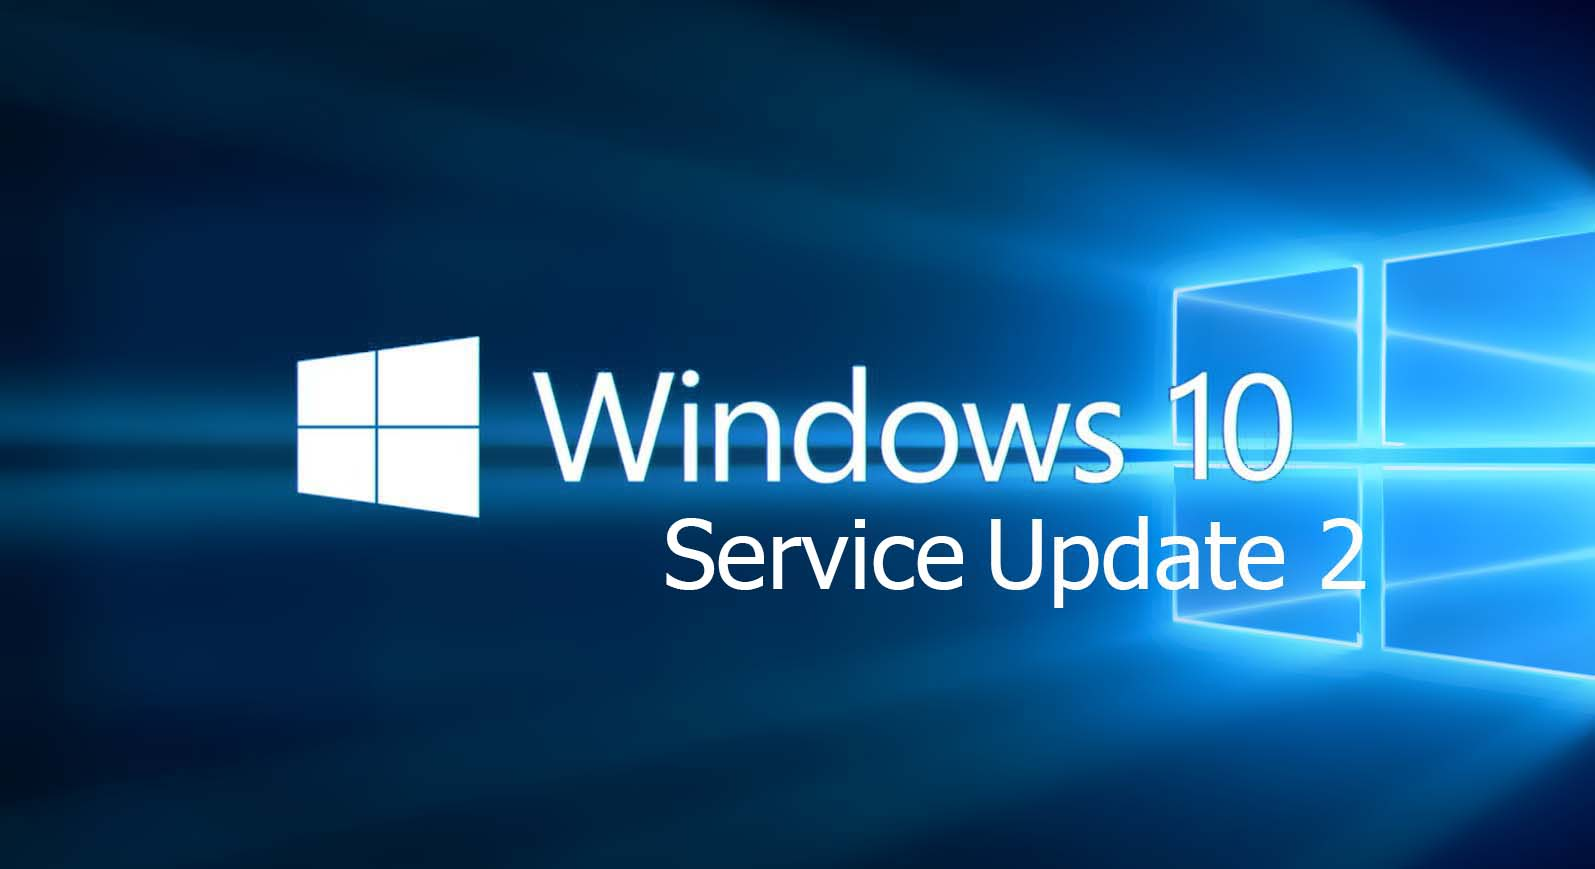 Windows 10 Servie Update 2